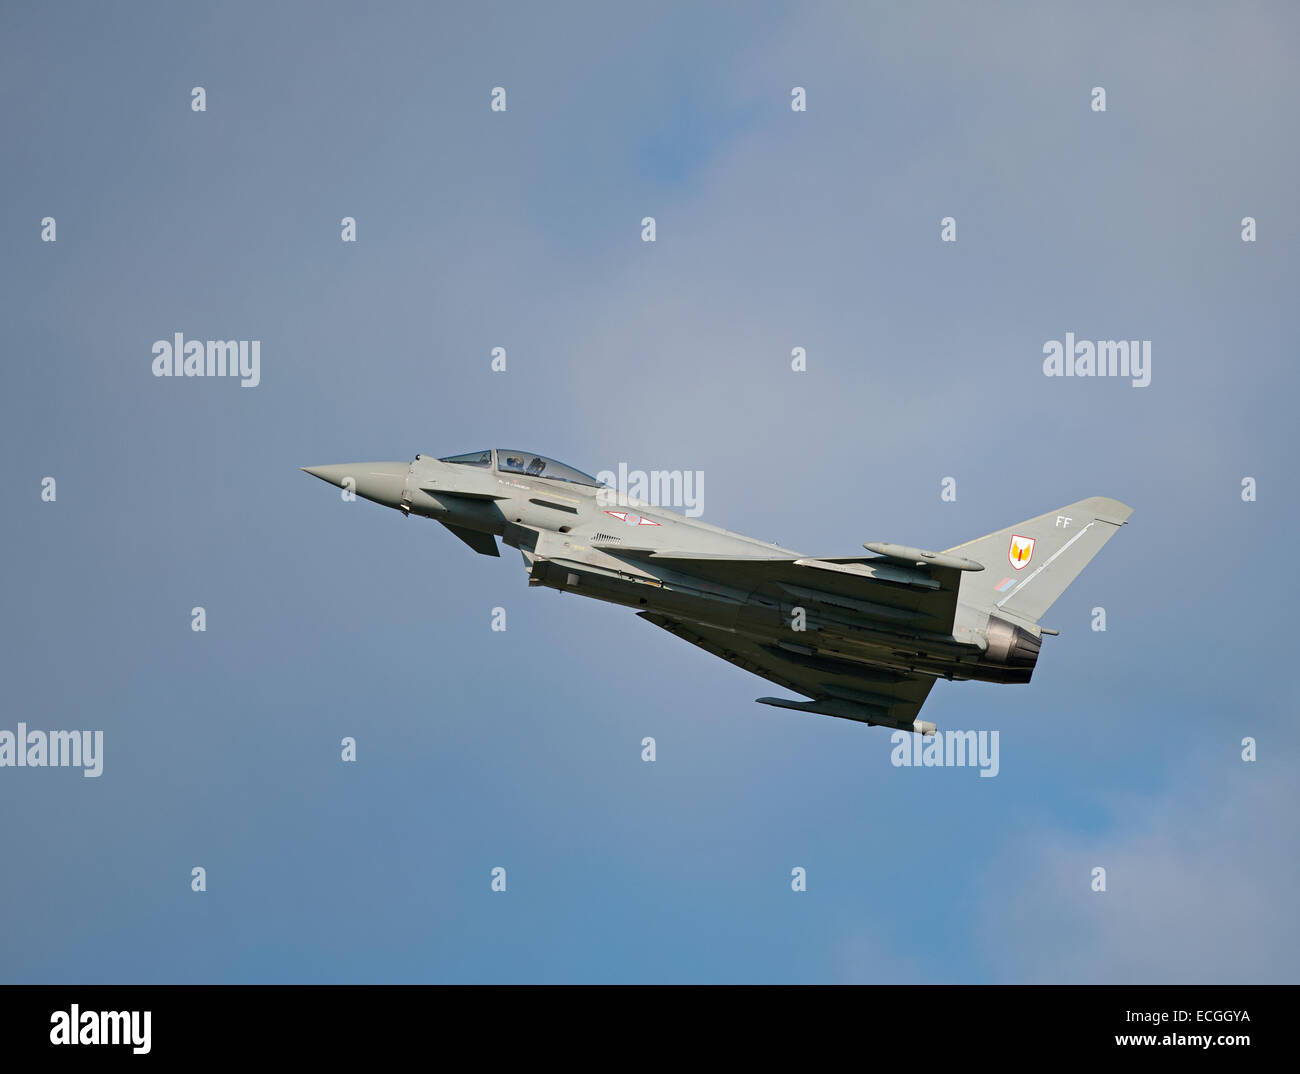 Eurofighter Typhoon FRG4 on low approach to RAF Lossiemouth, Scotland.  SCO 9345. - Stock Image